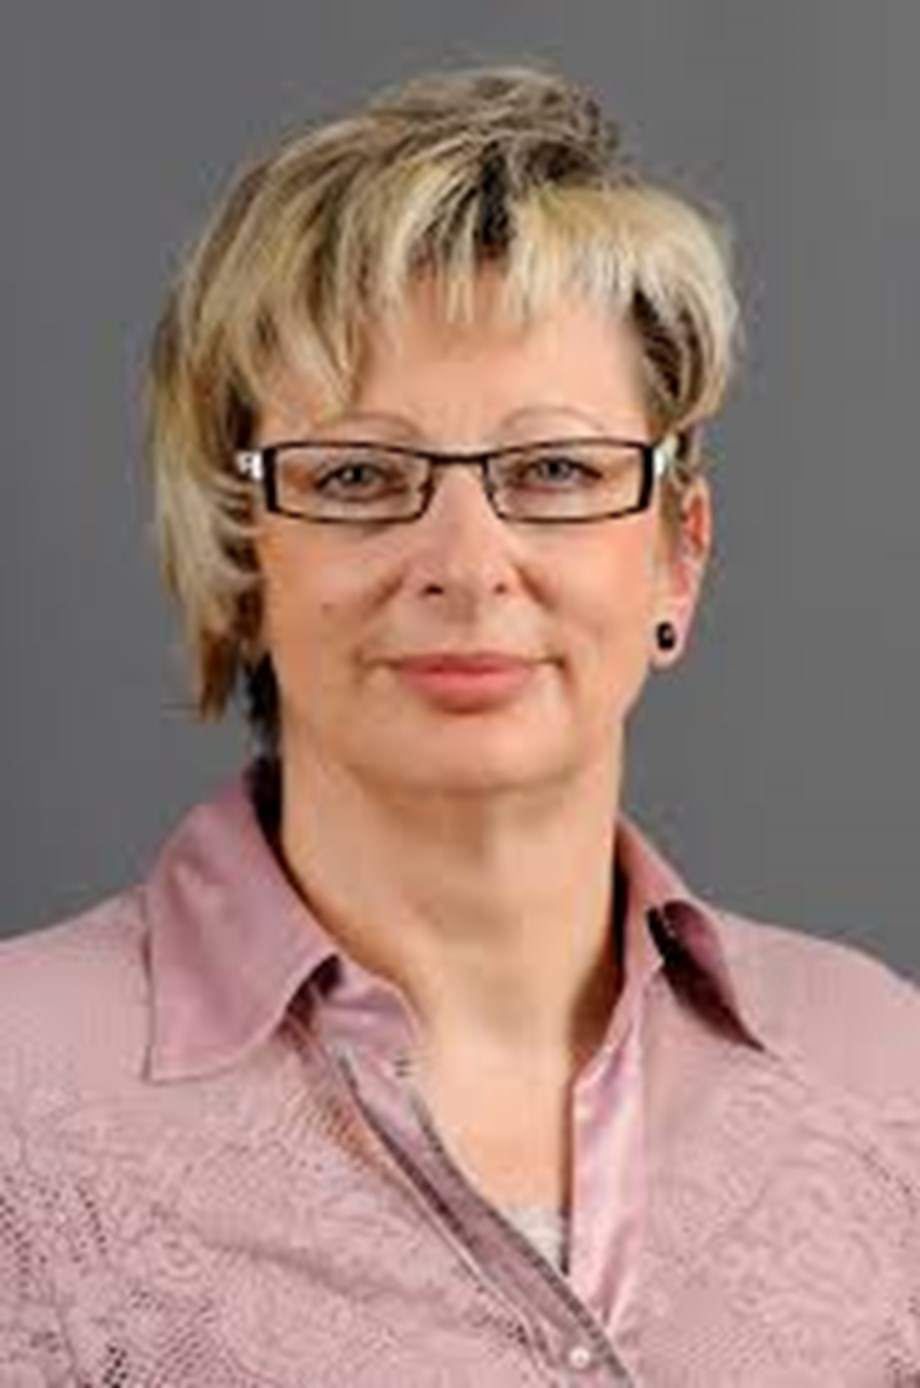 Czech Republic's Industry Minister Novakova likely to be replaced by PM